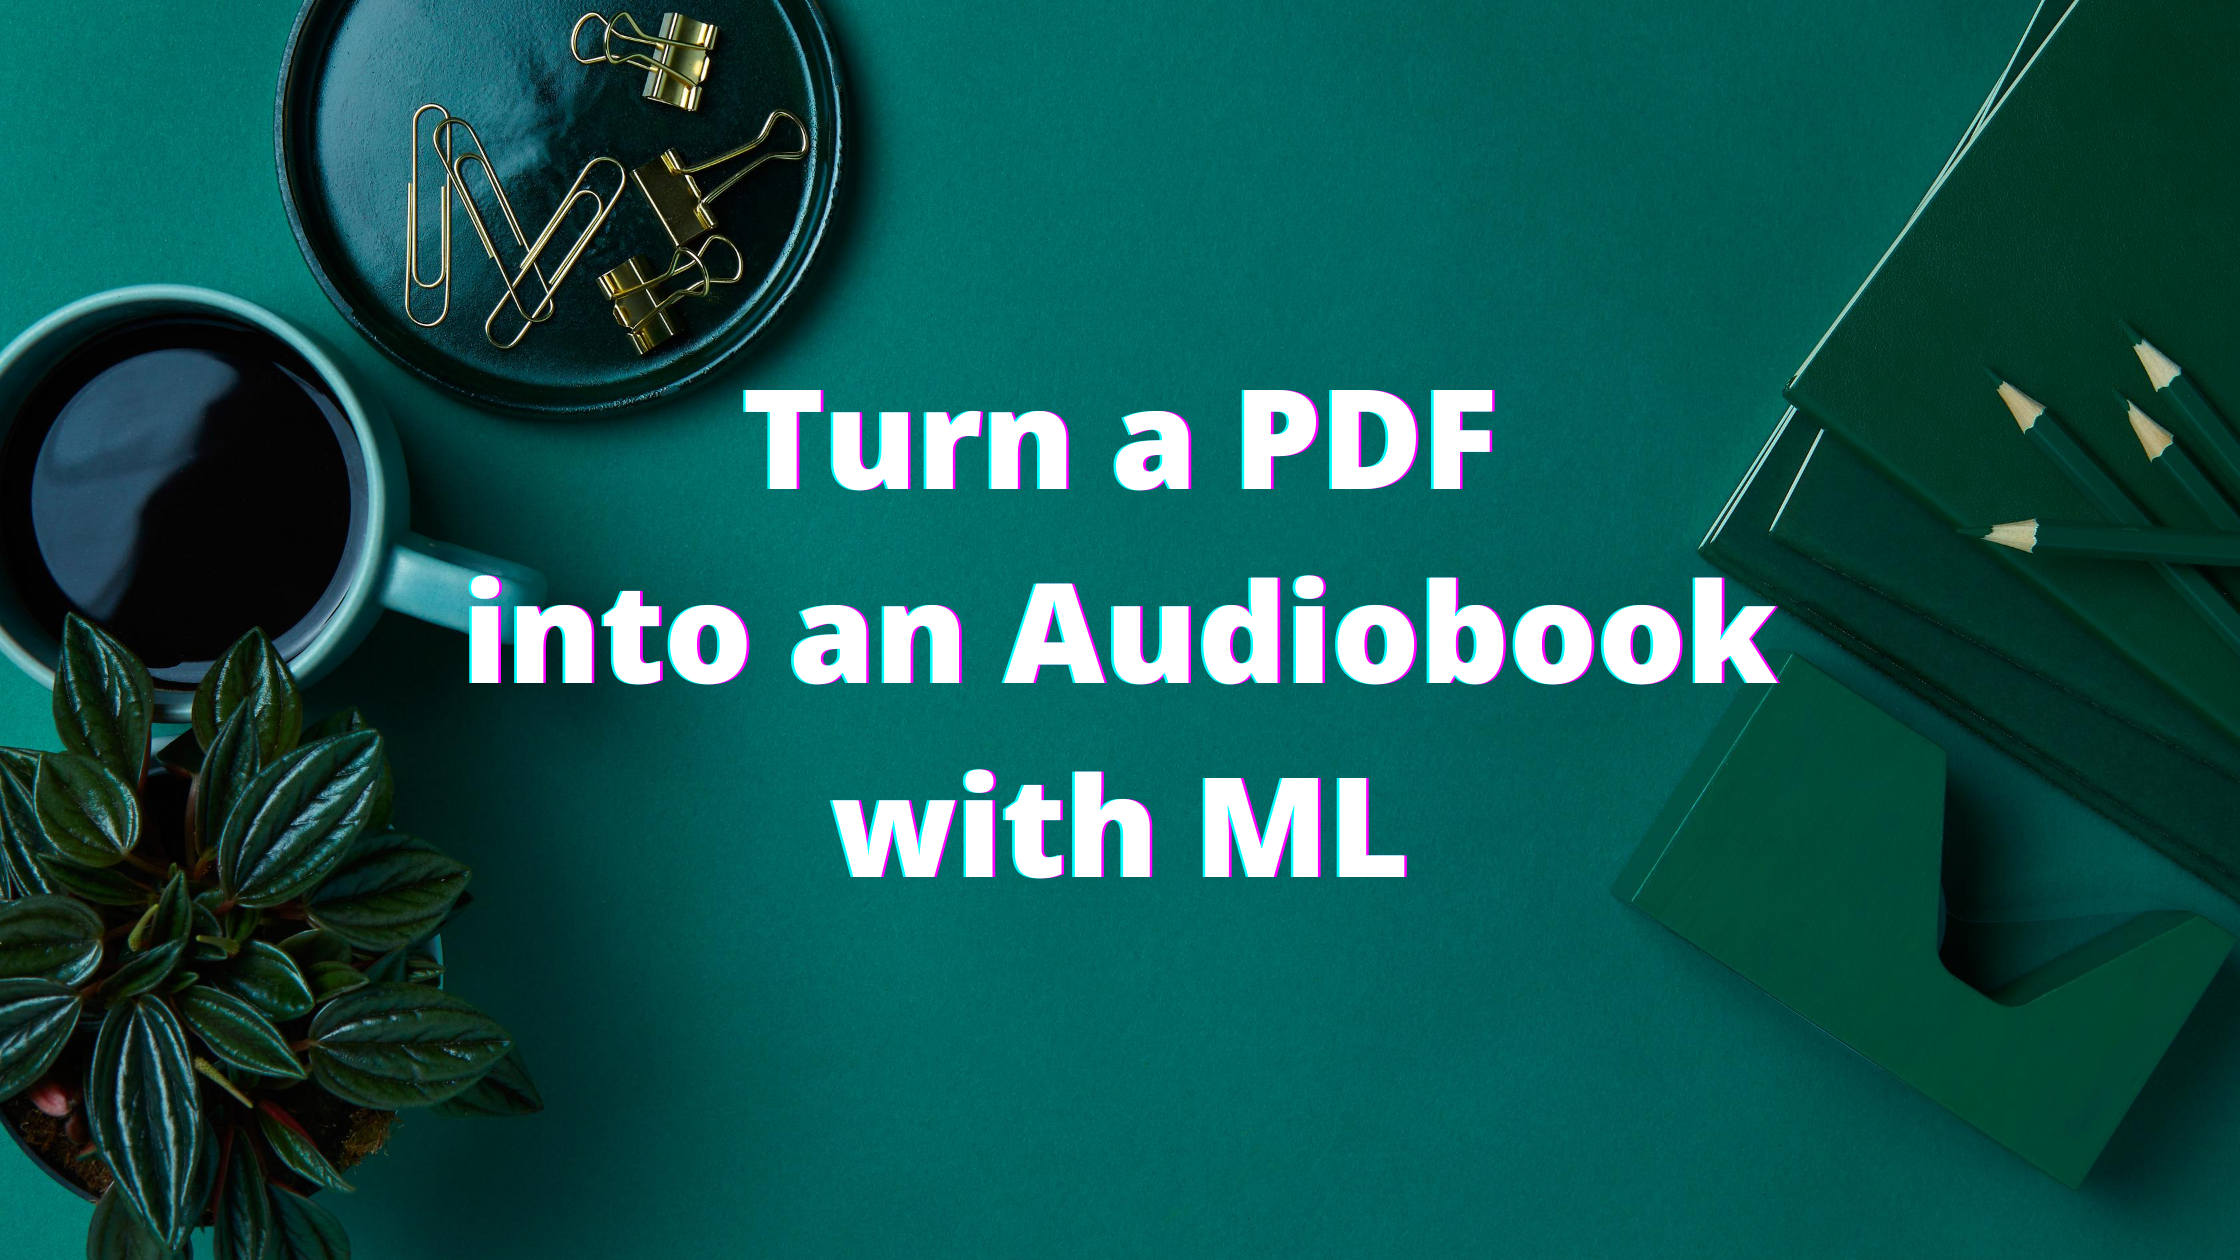 Convert PDFs to Audiobooks with Machine Learning